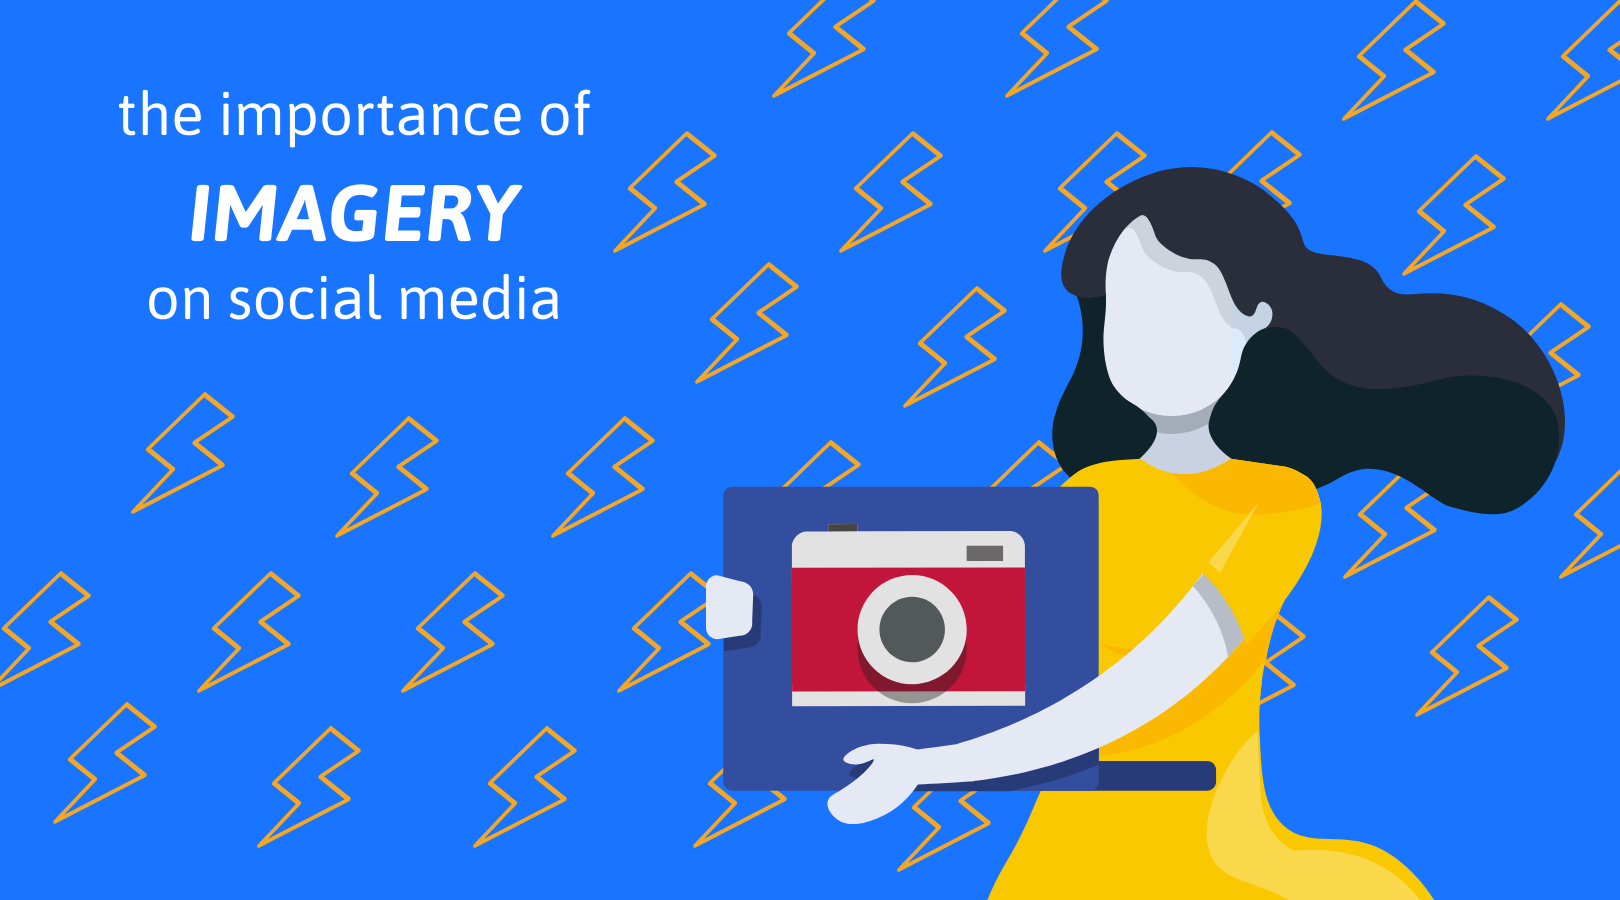 6 The importance of imagery on social media.